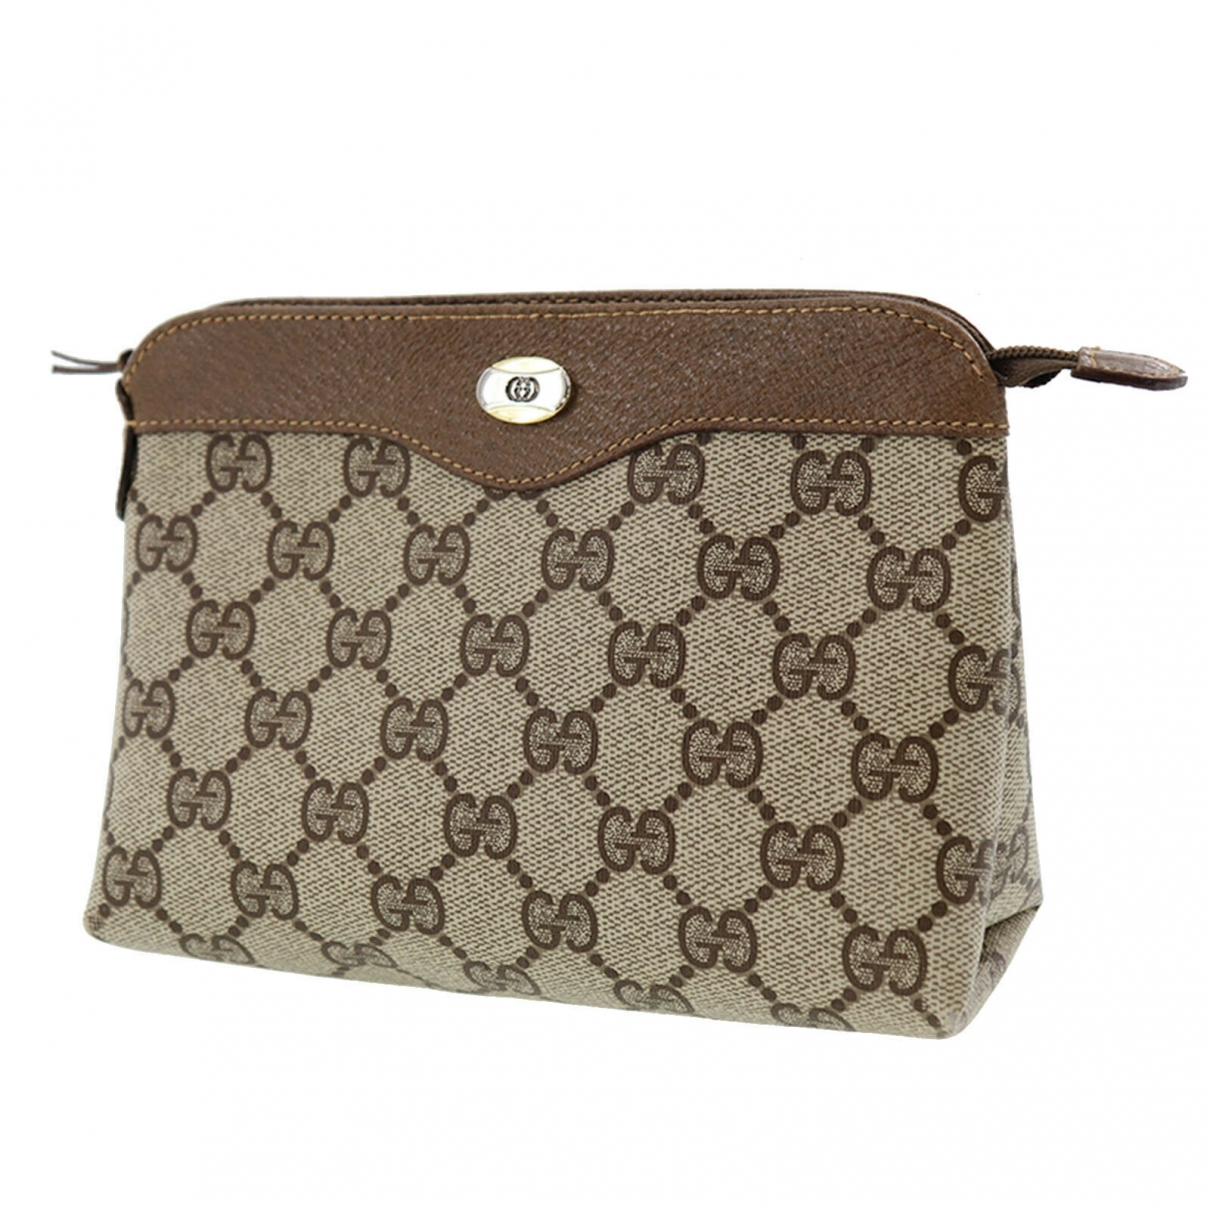 Gucci \N Brown Leather Clutch bag for Women \N